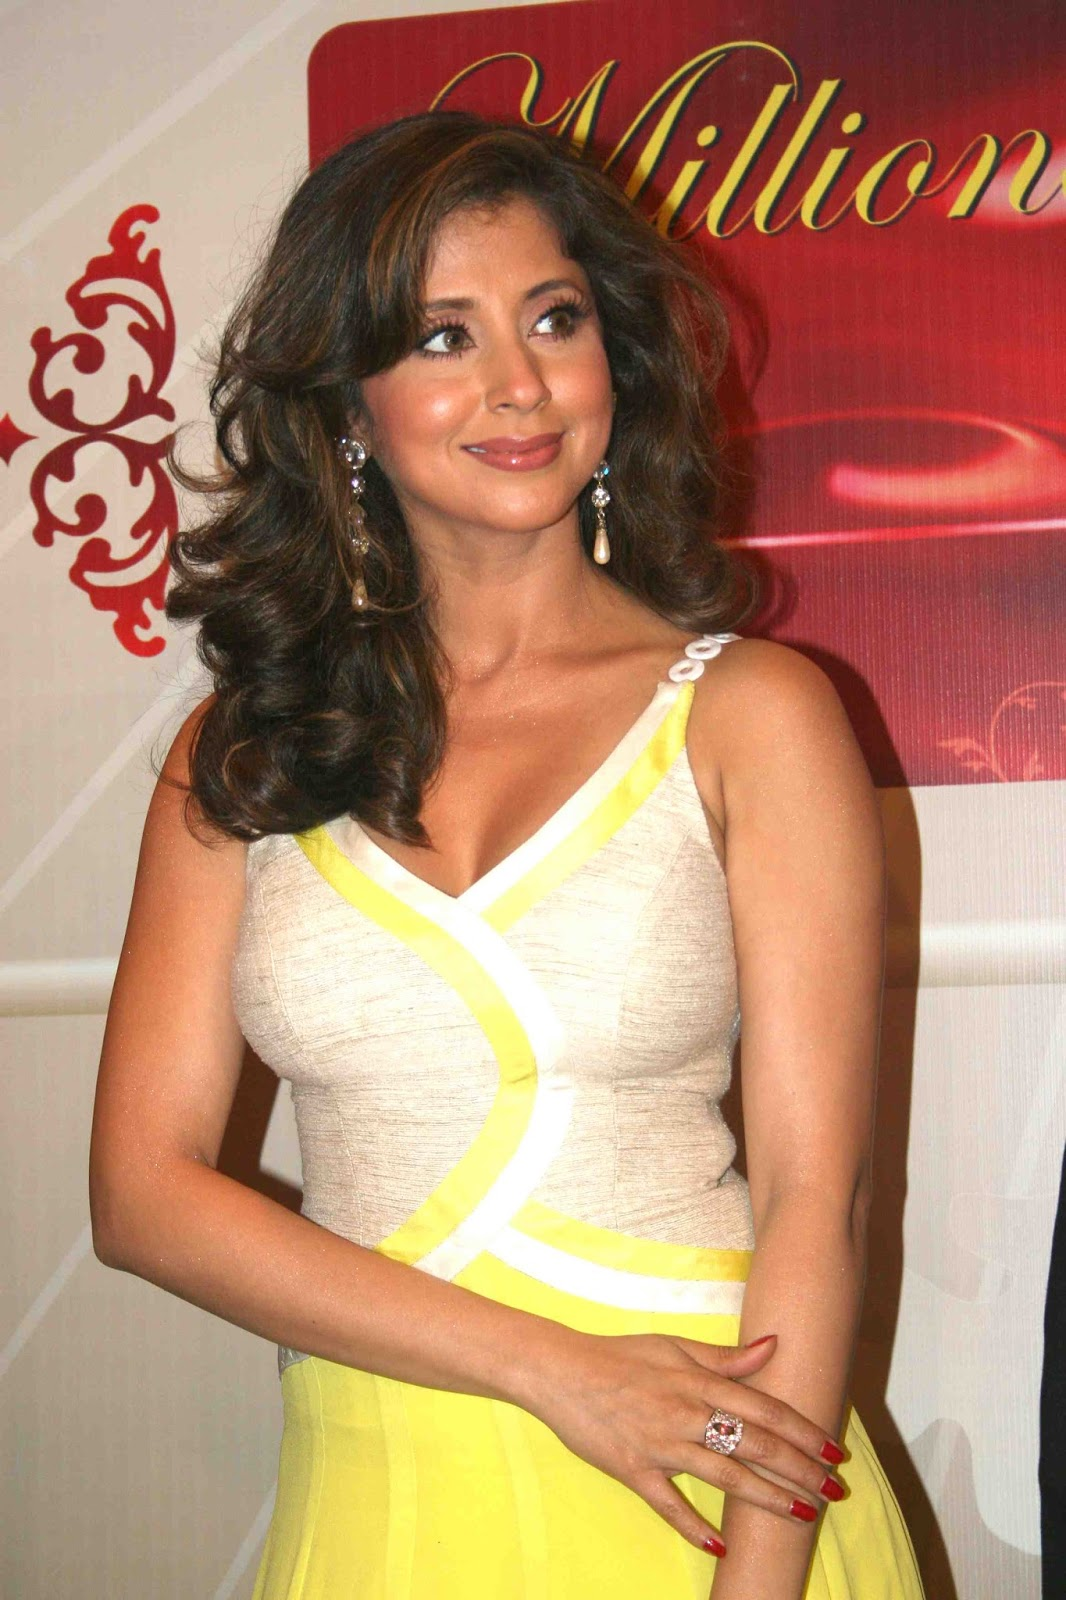 Bollywood Pics Pix4World Urmila Matondkar Hd Hot And Sexy -8328